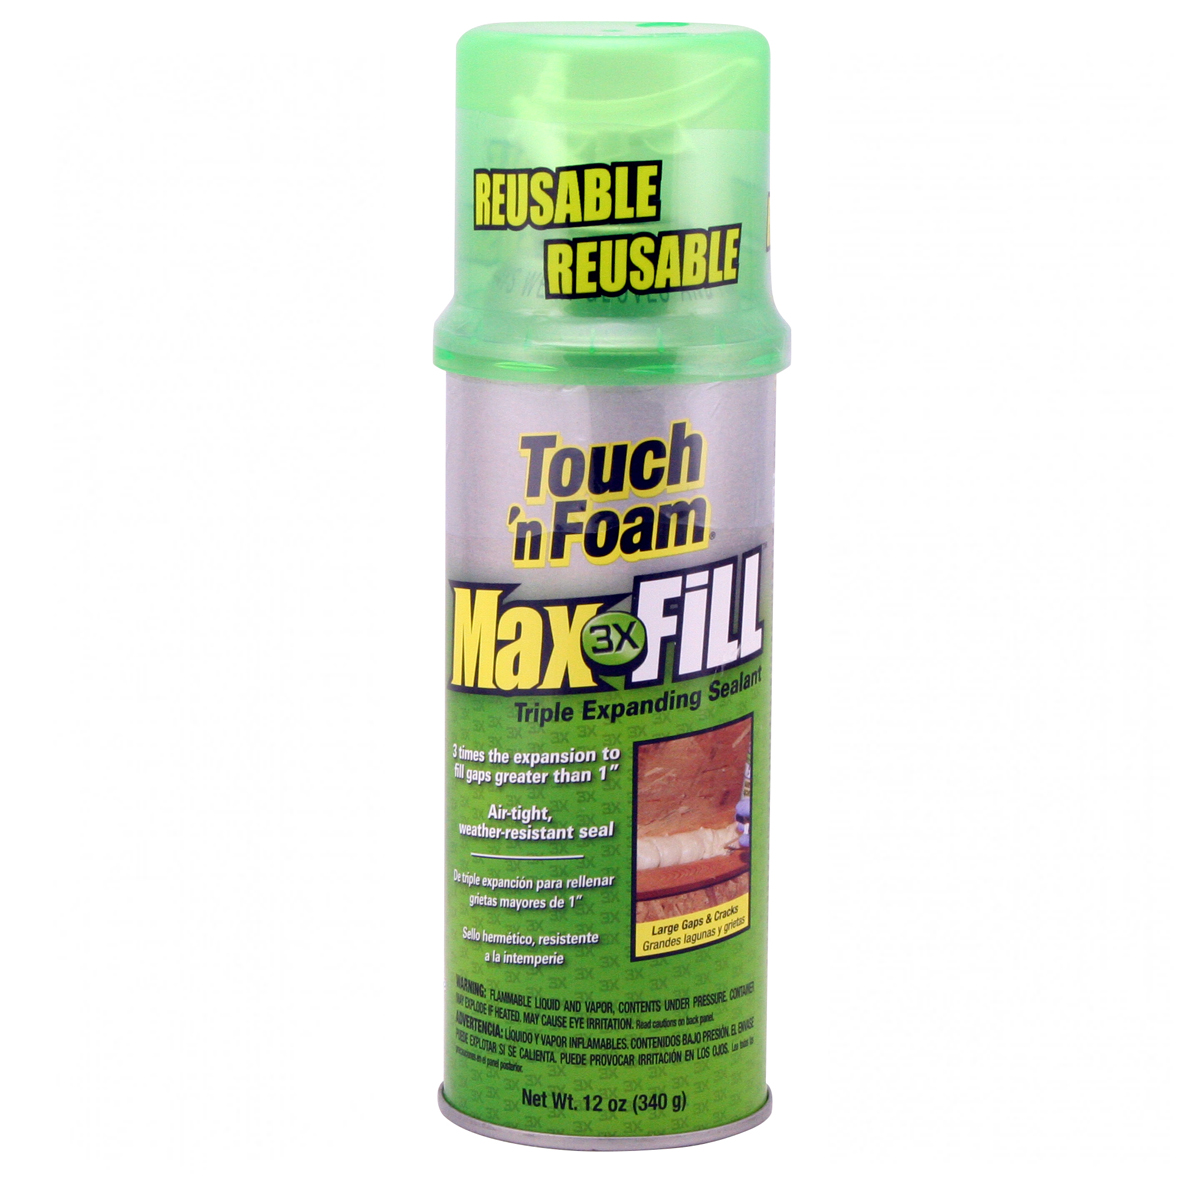 TOUCH 'N FOAM MAXIMUM EXPANDING SEALANT